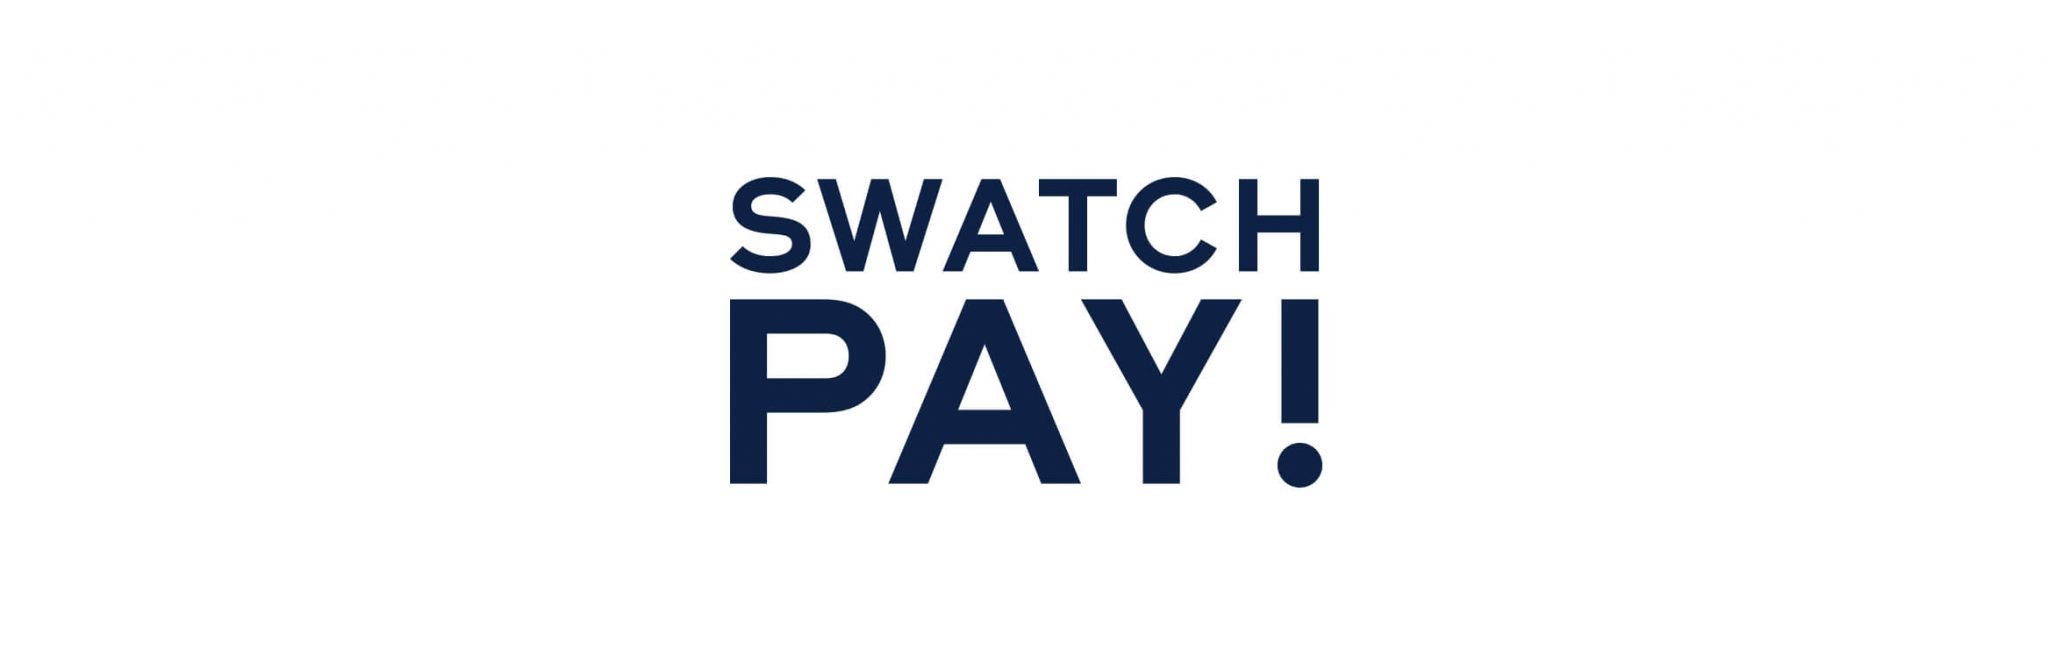 mobile_wallets_swatch_pay.jpg